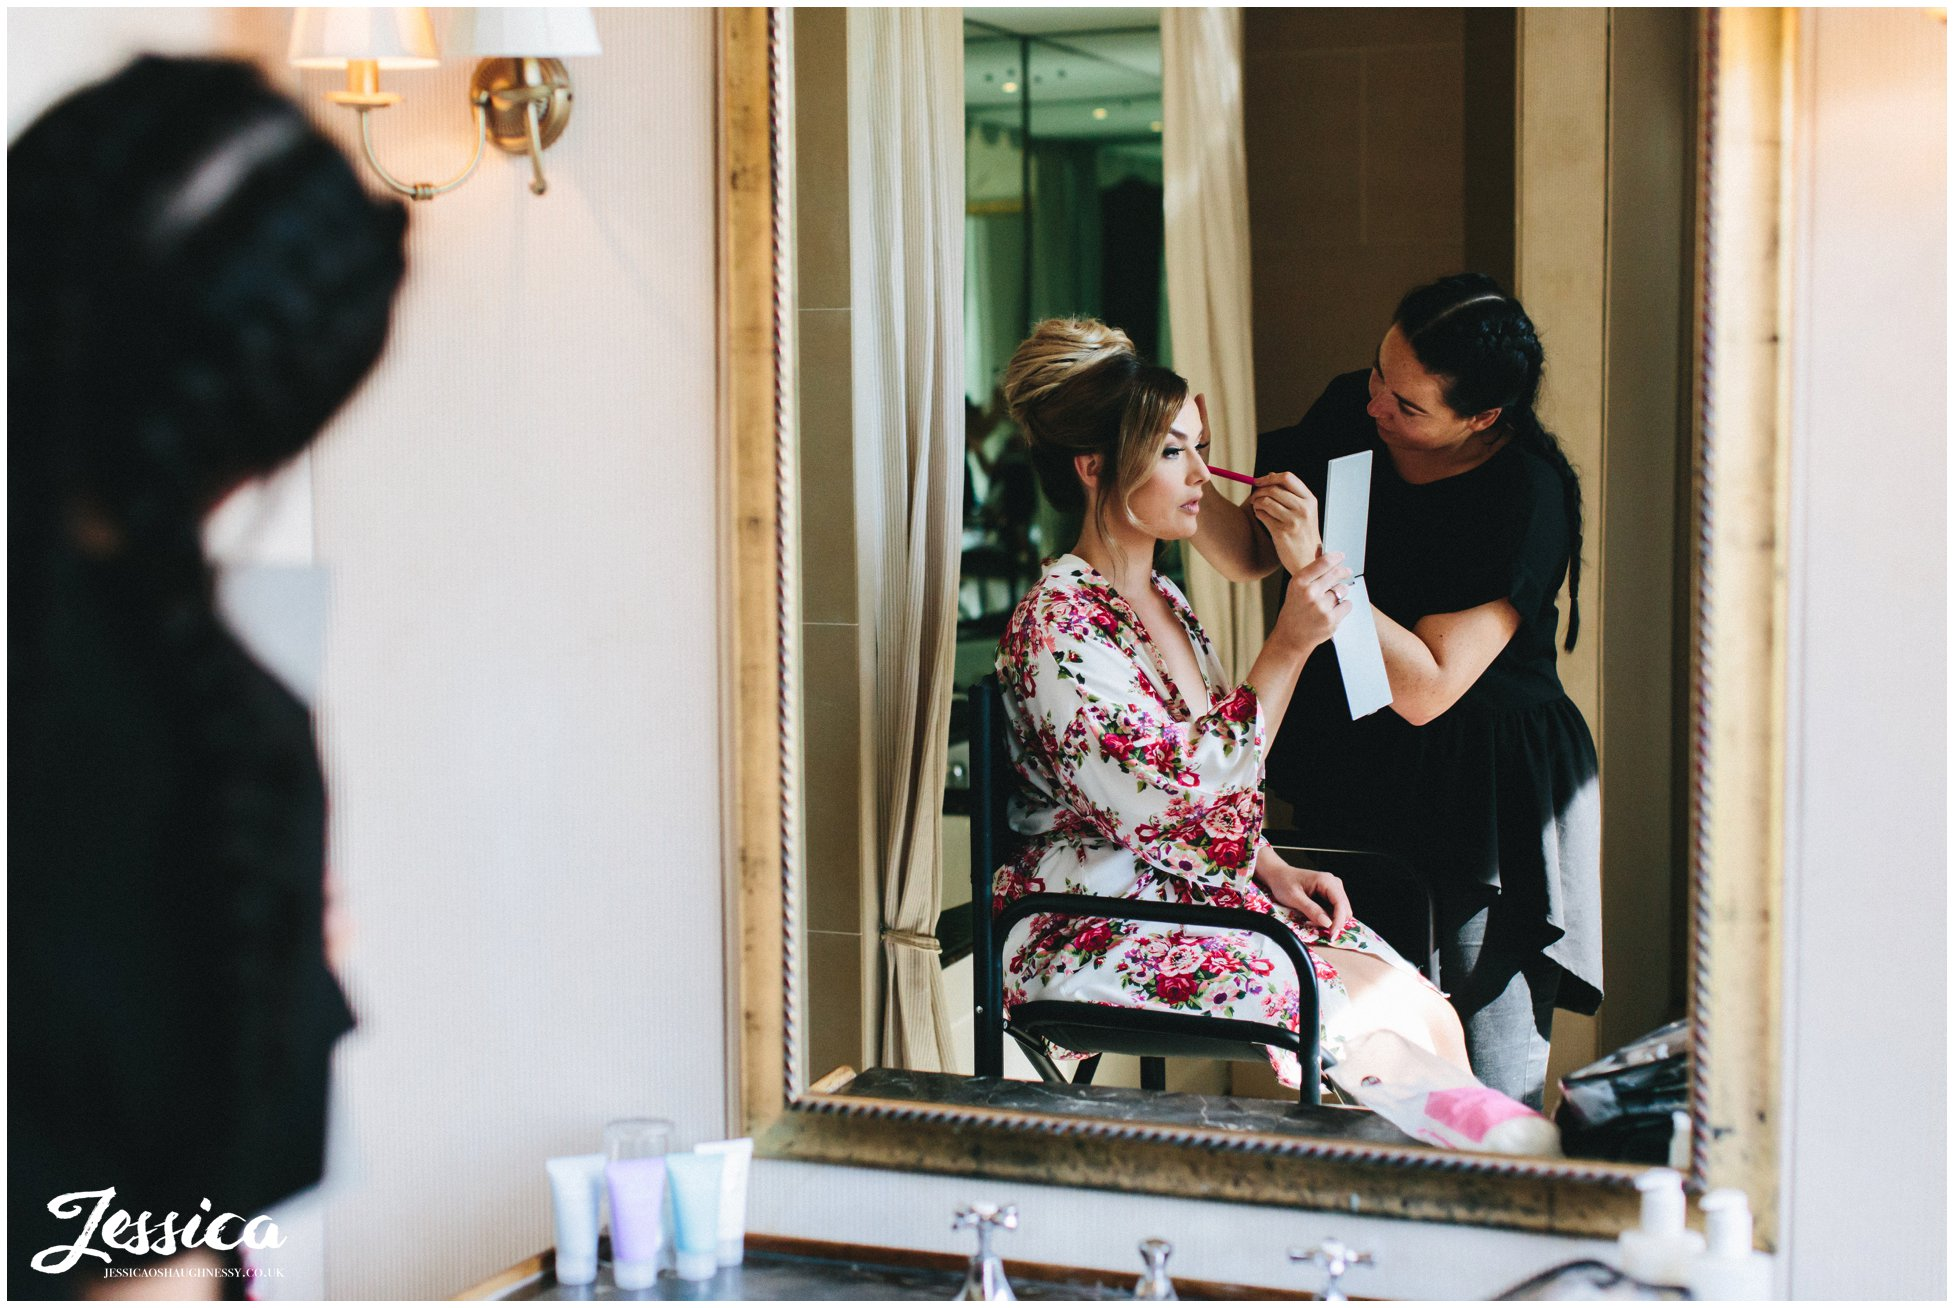 the bride has last make-up touches before the ceremony